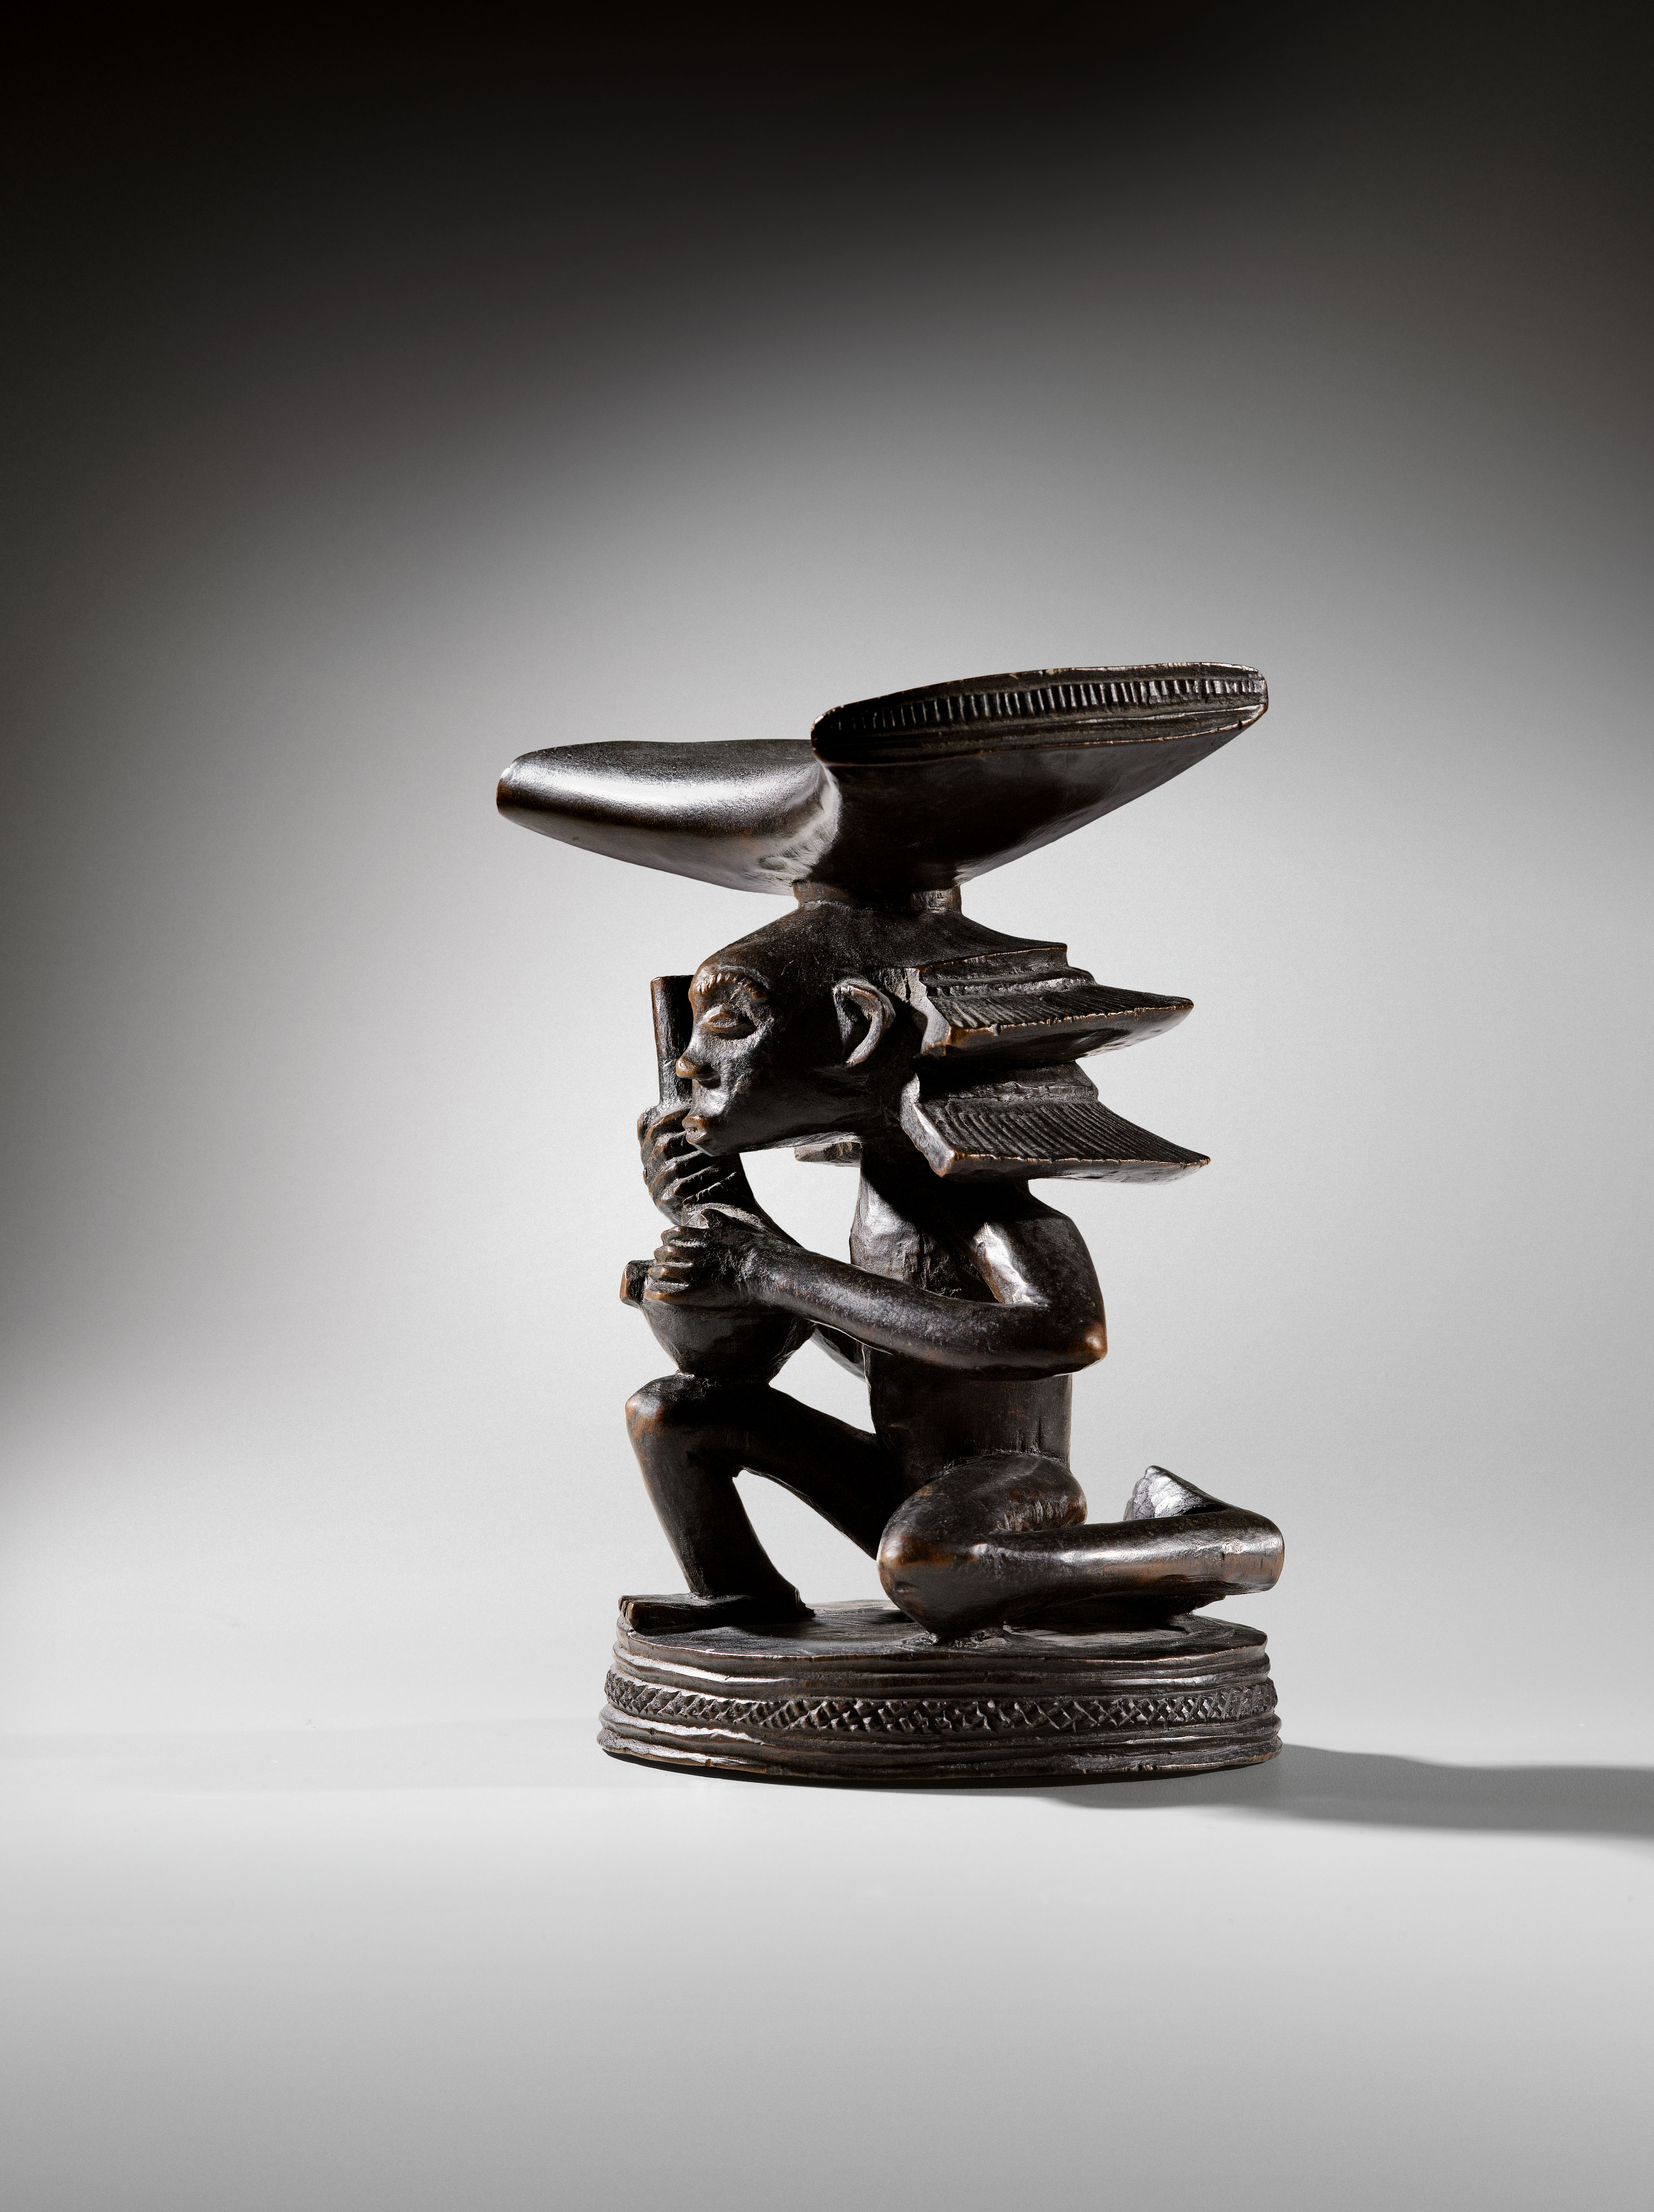 Introducing the frum collection of african art